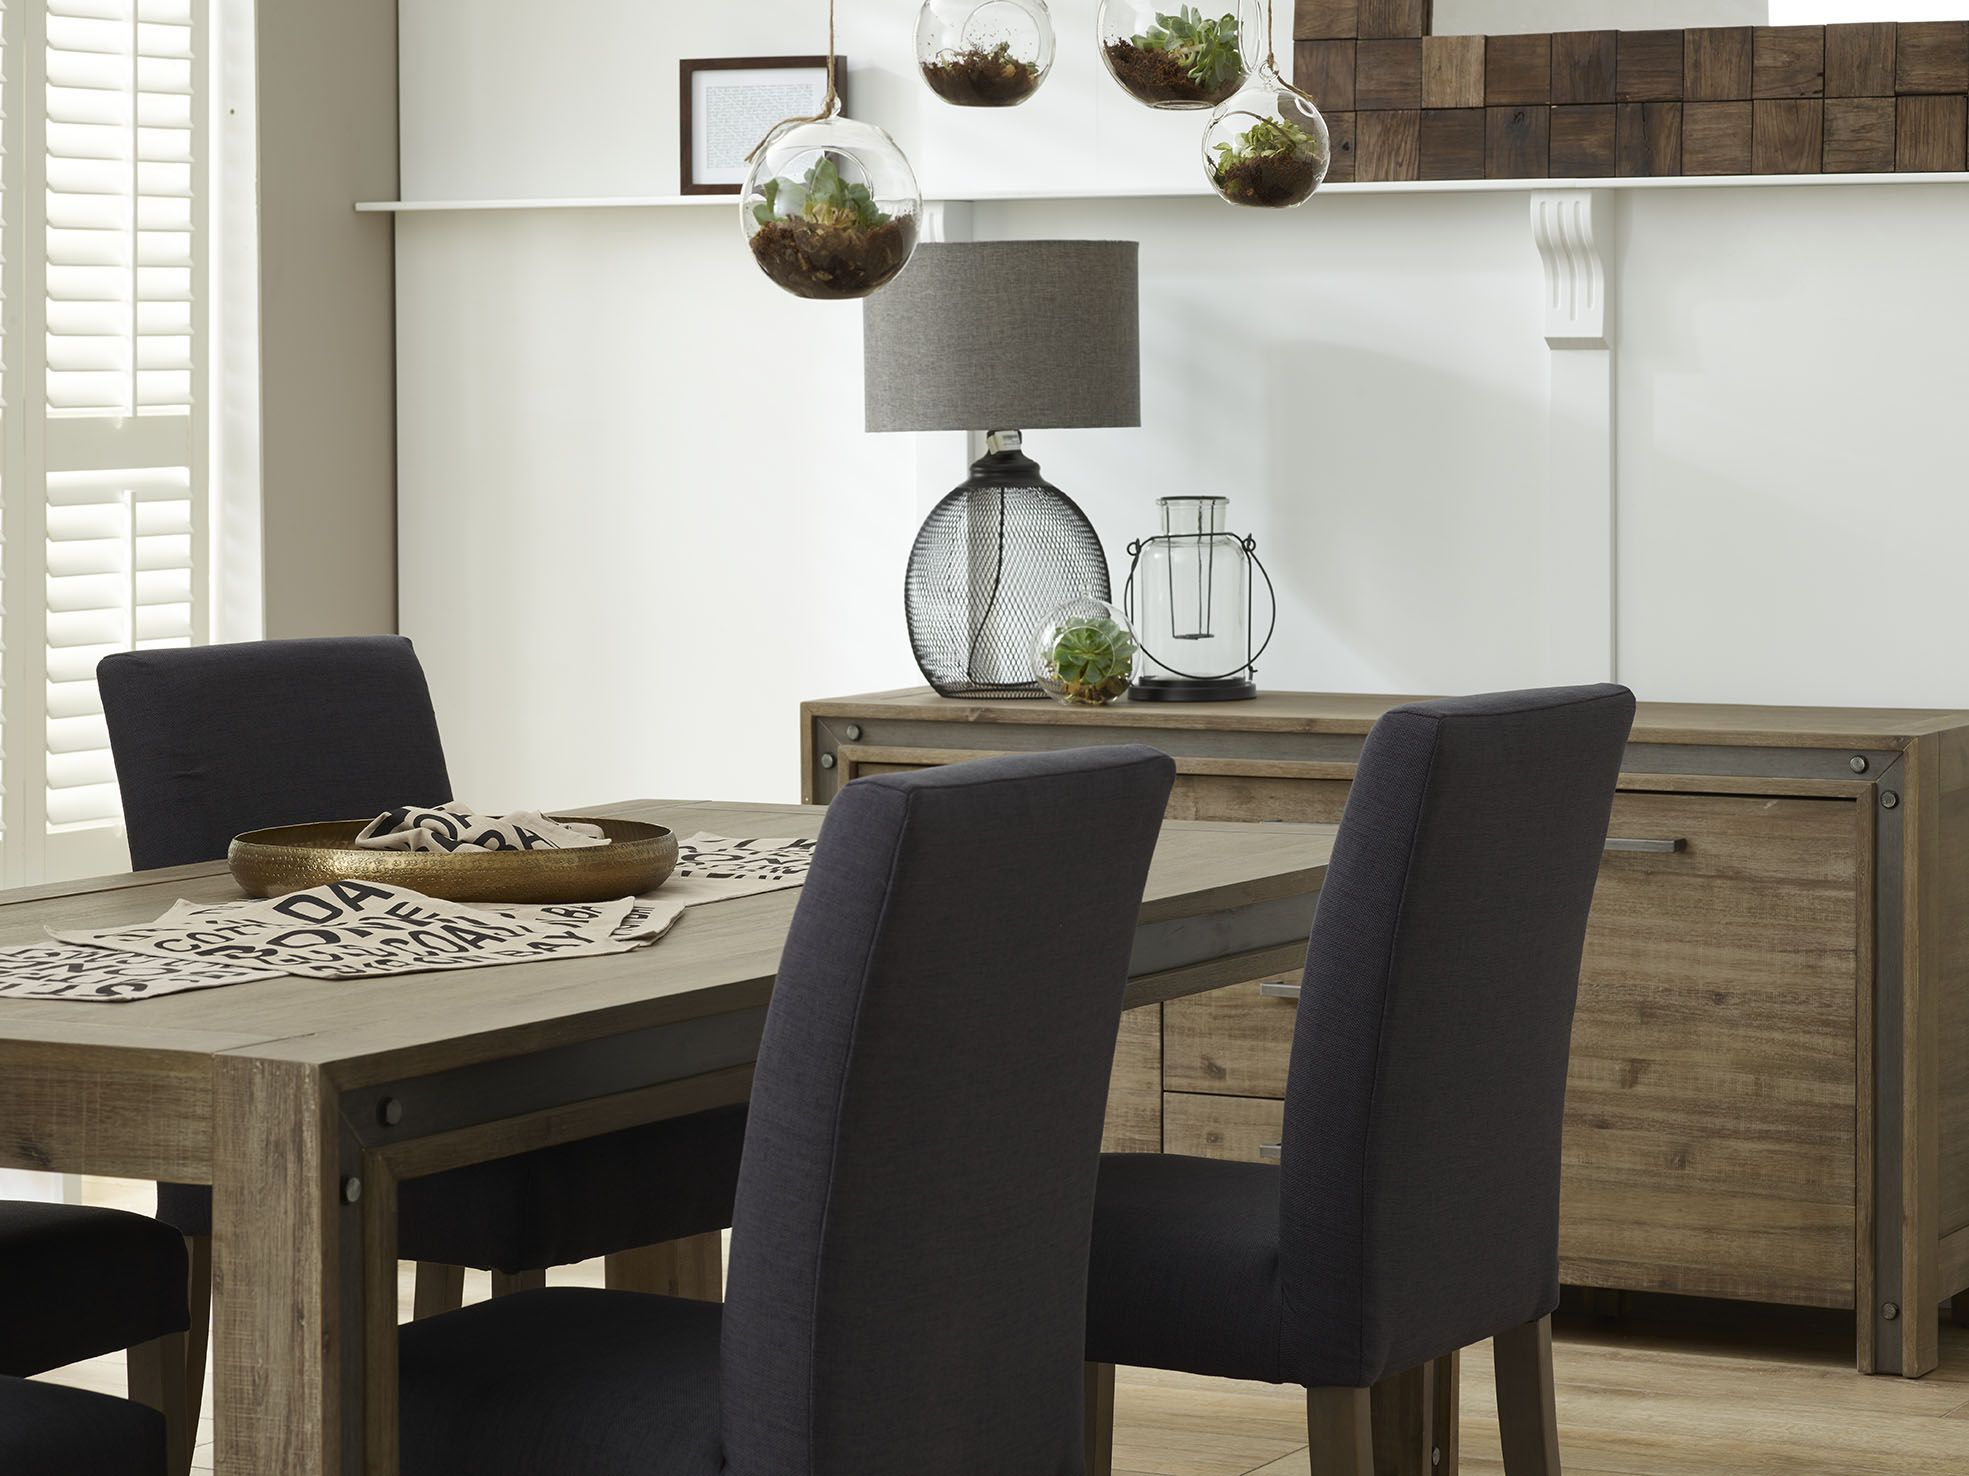 Focus On Furnitureu0027s Lexington Dining Table And Buffet, With Nevada Dining  Chairs In Charcoal Linen